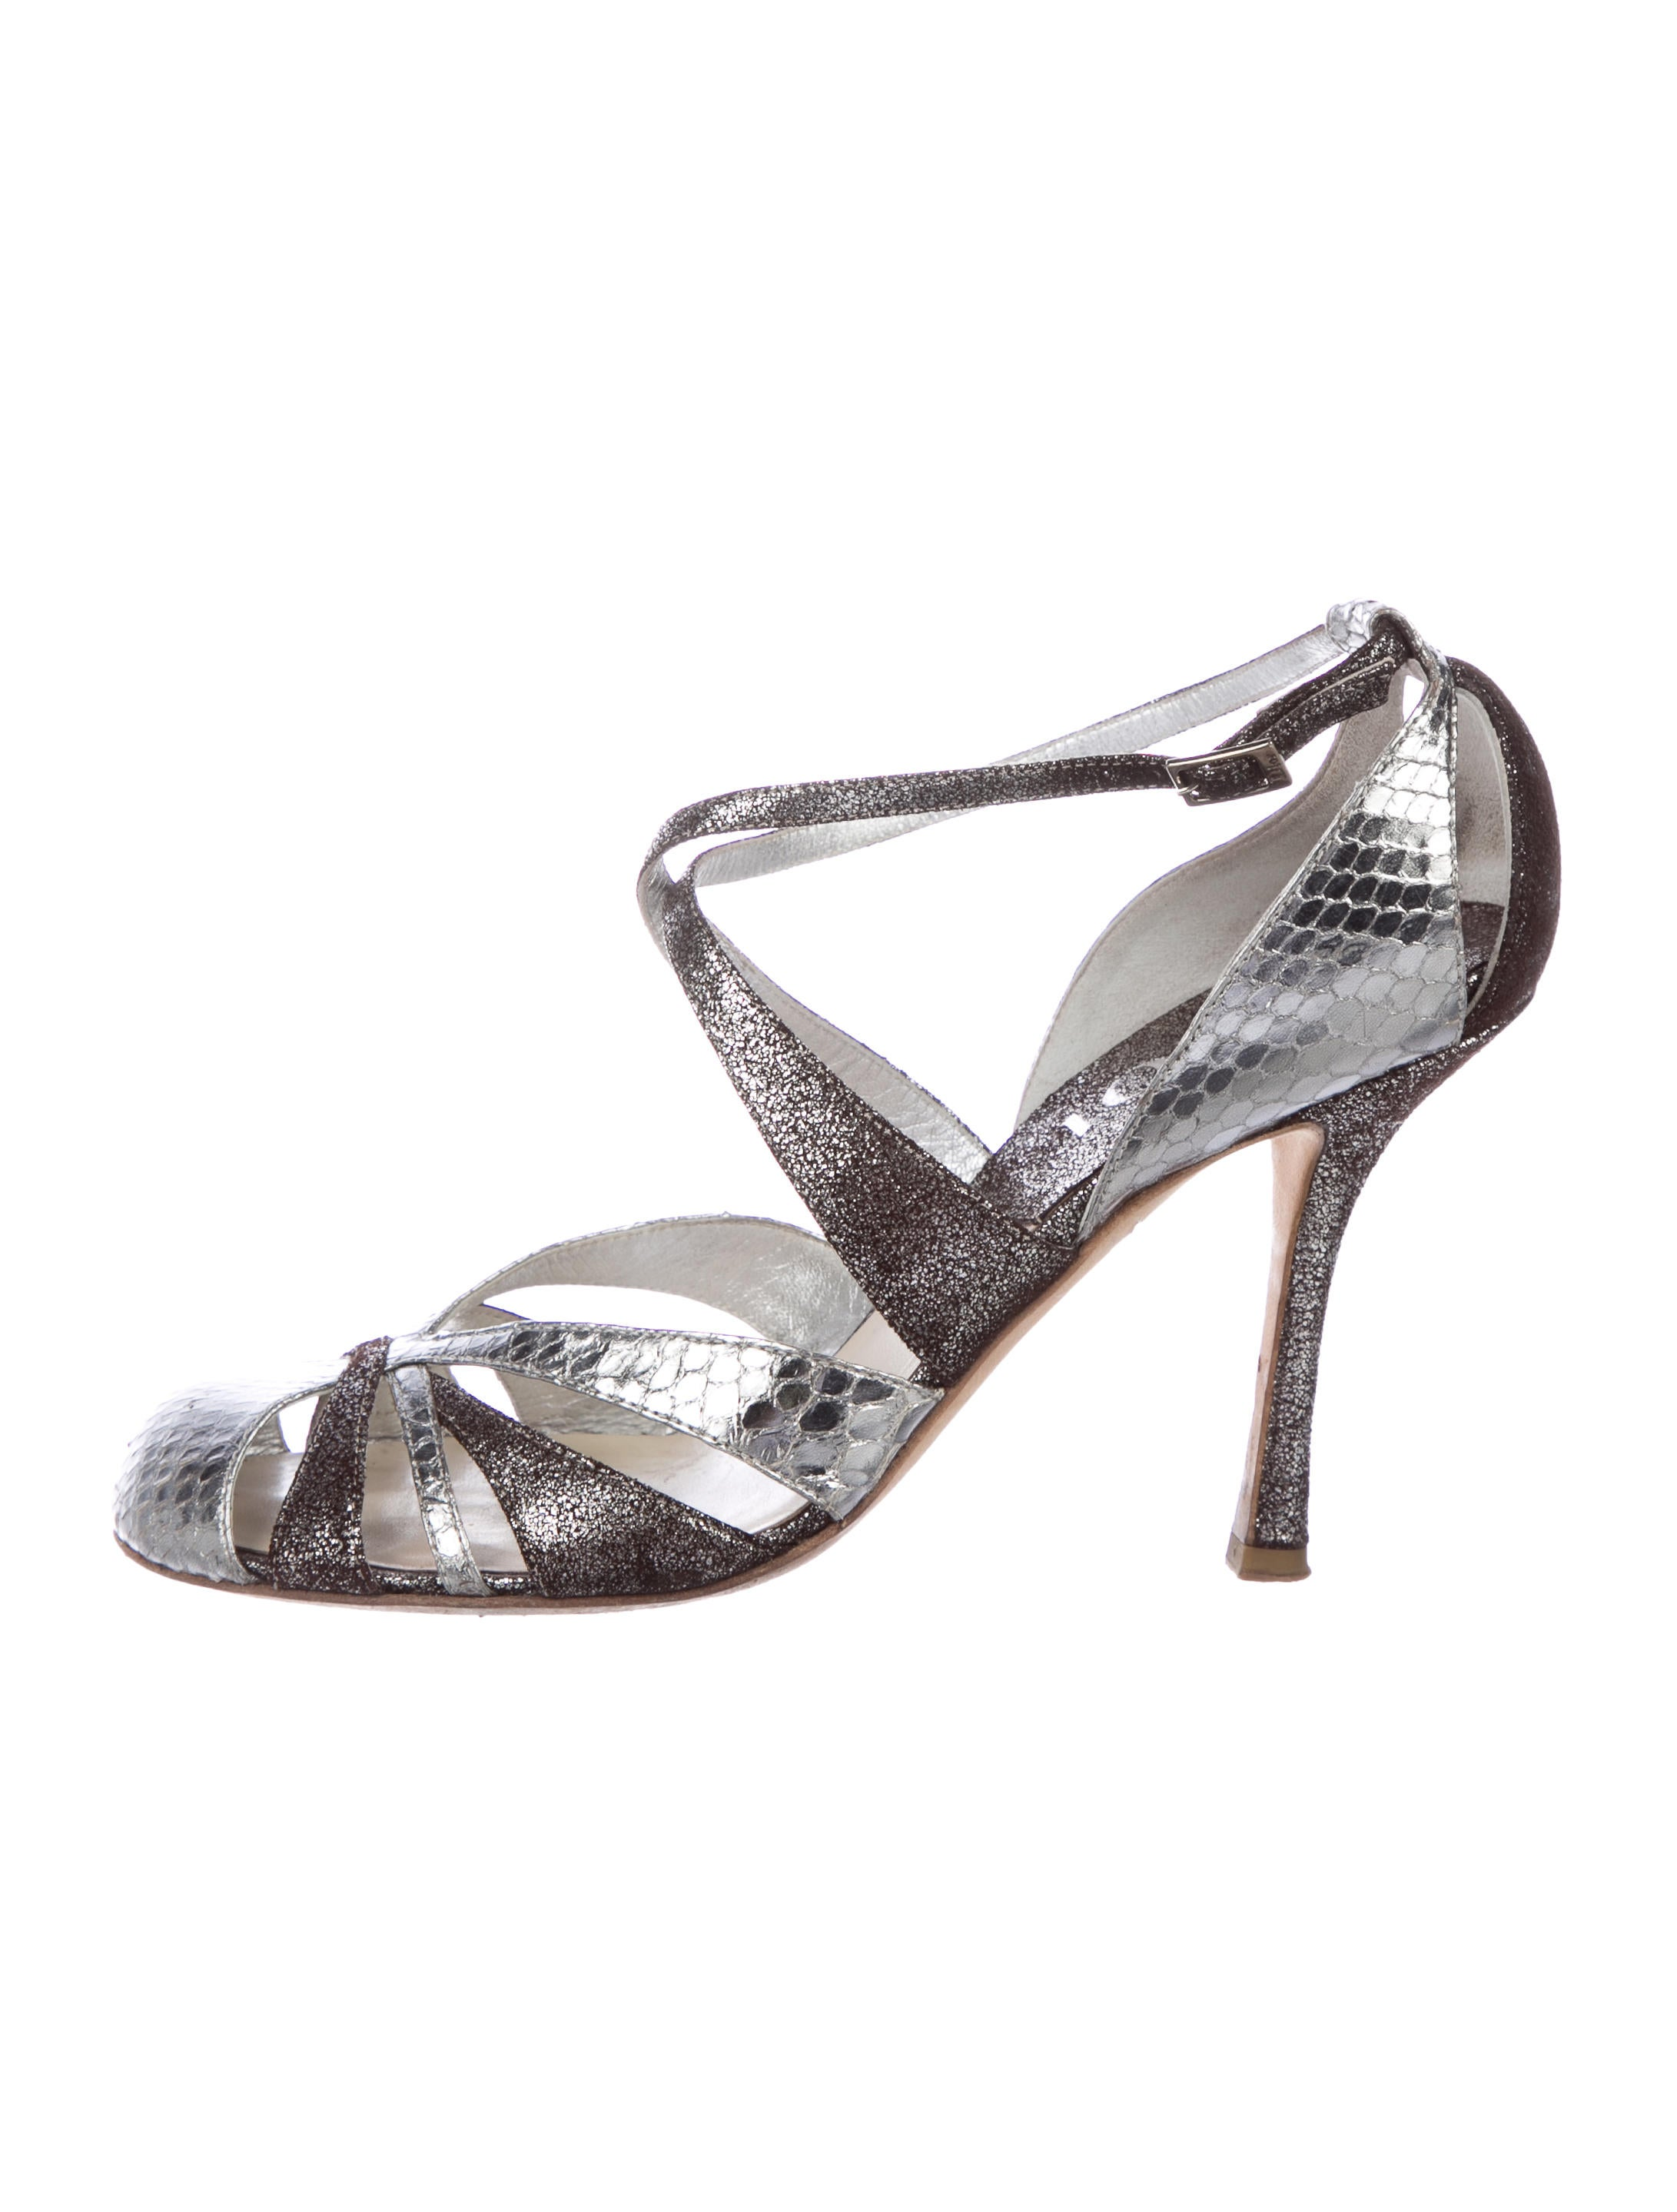 cheap price wholesale Christian Dior Glamnight Snakeskin Pumps cheap price free shipping explore cheap online professional online ithZv